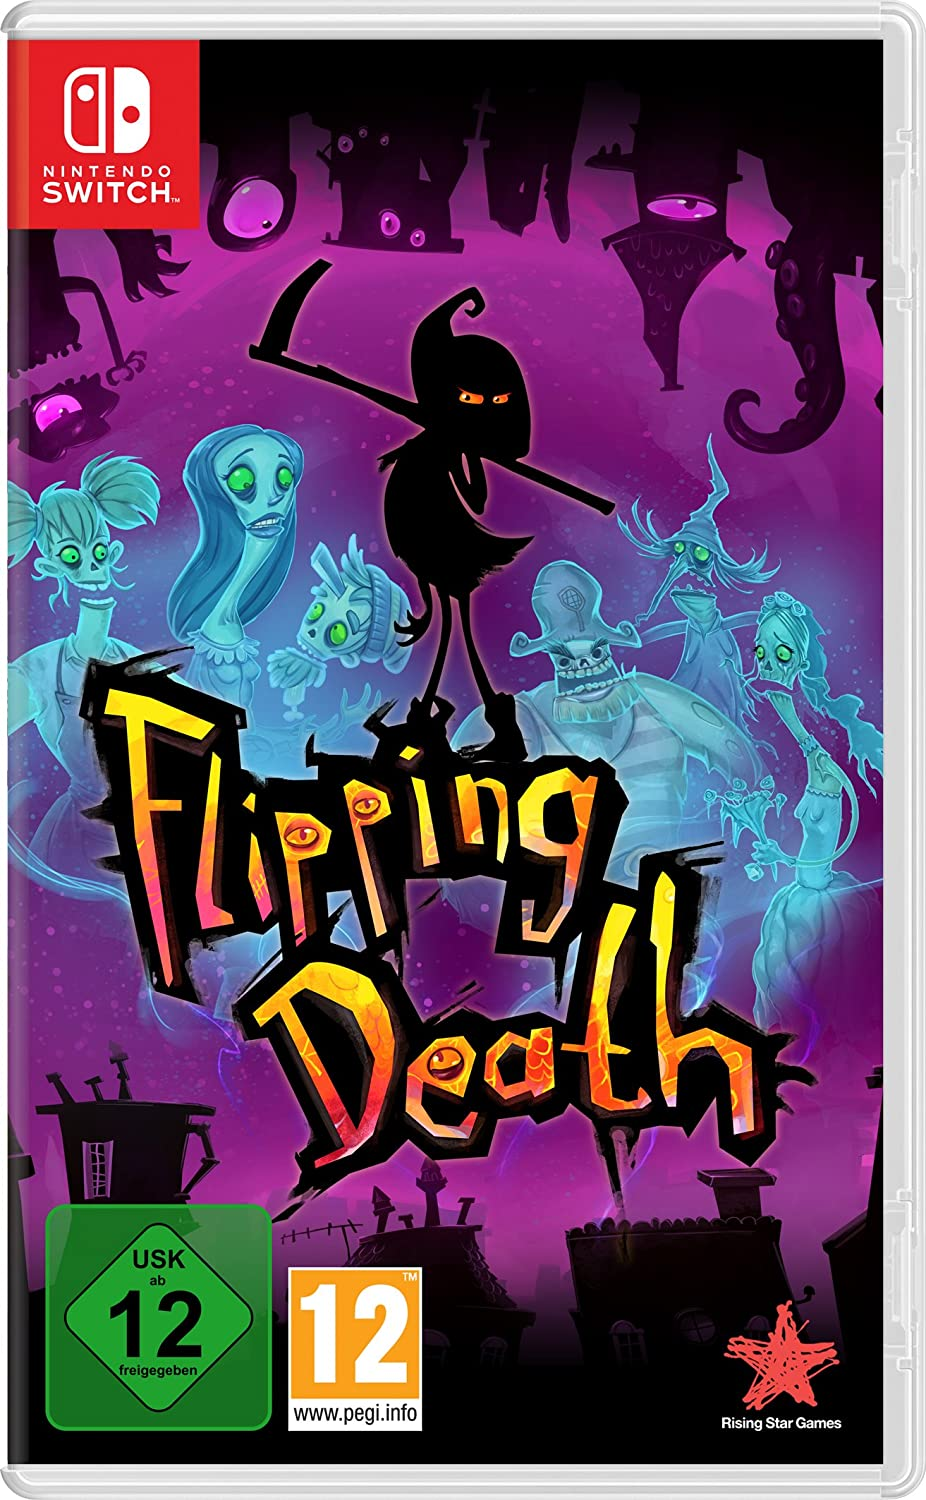 GAME Flipping Death Básico Nintendo Switch vídeo - Juego (Nintendo Switch, Aventura, T (Teen)): Amazon.es: Videojuegos